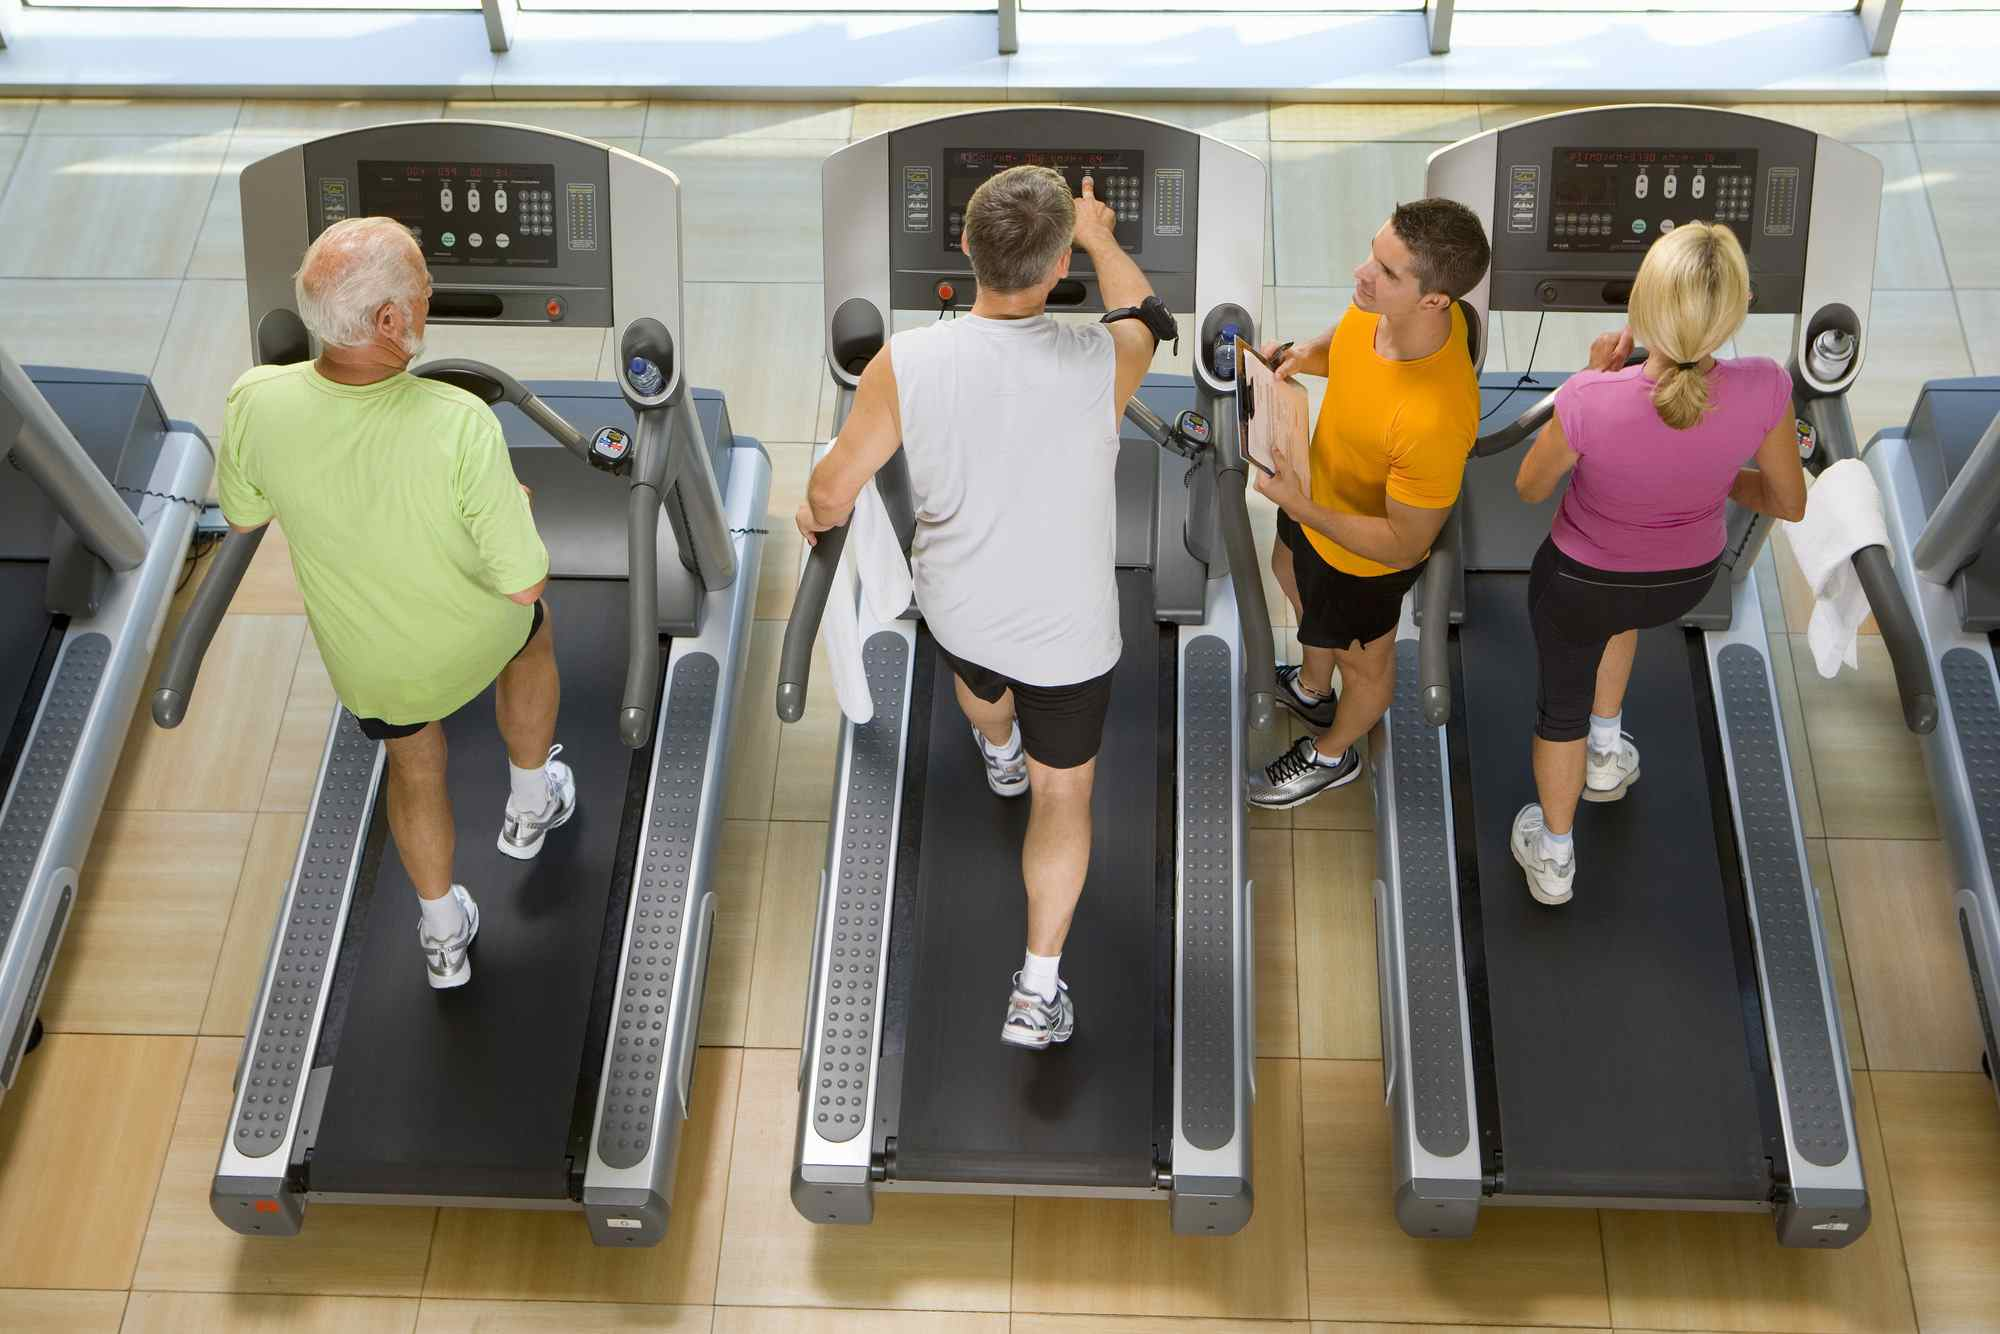 People on Treadmills in Gym with Coach